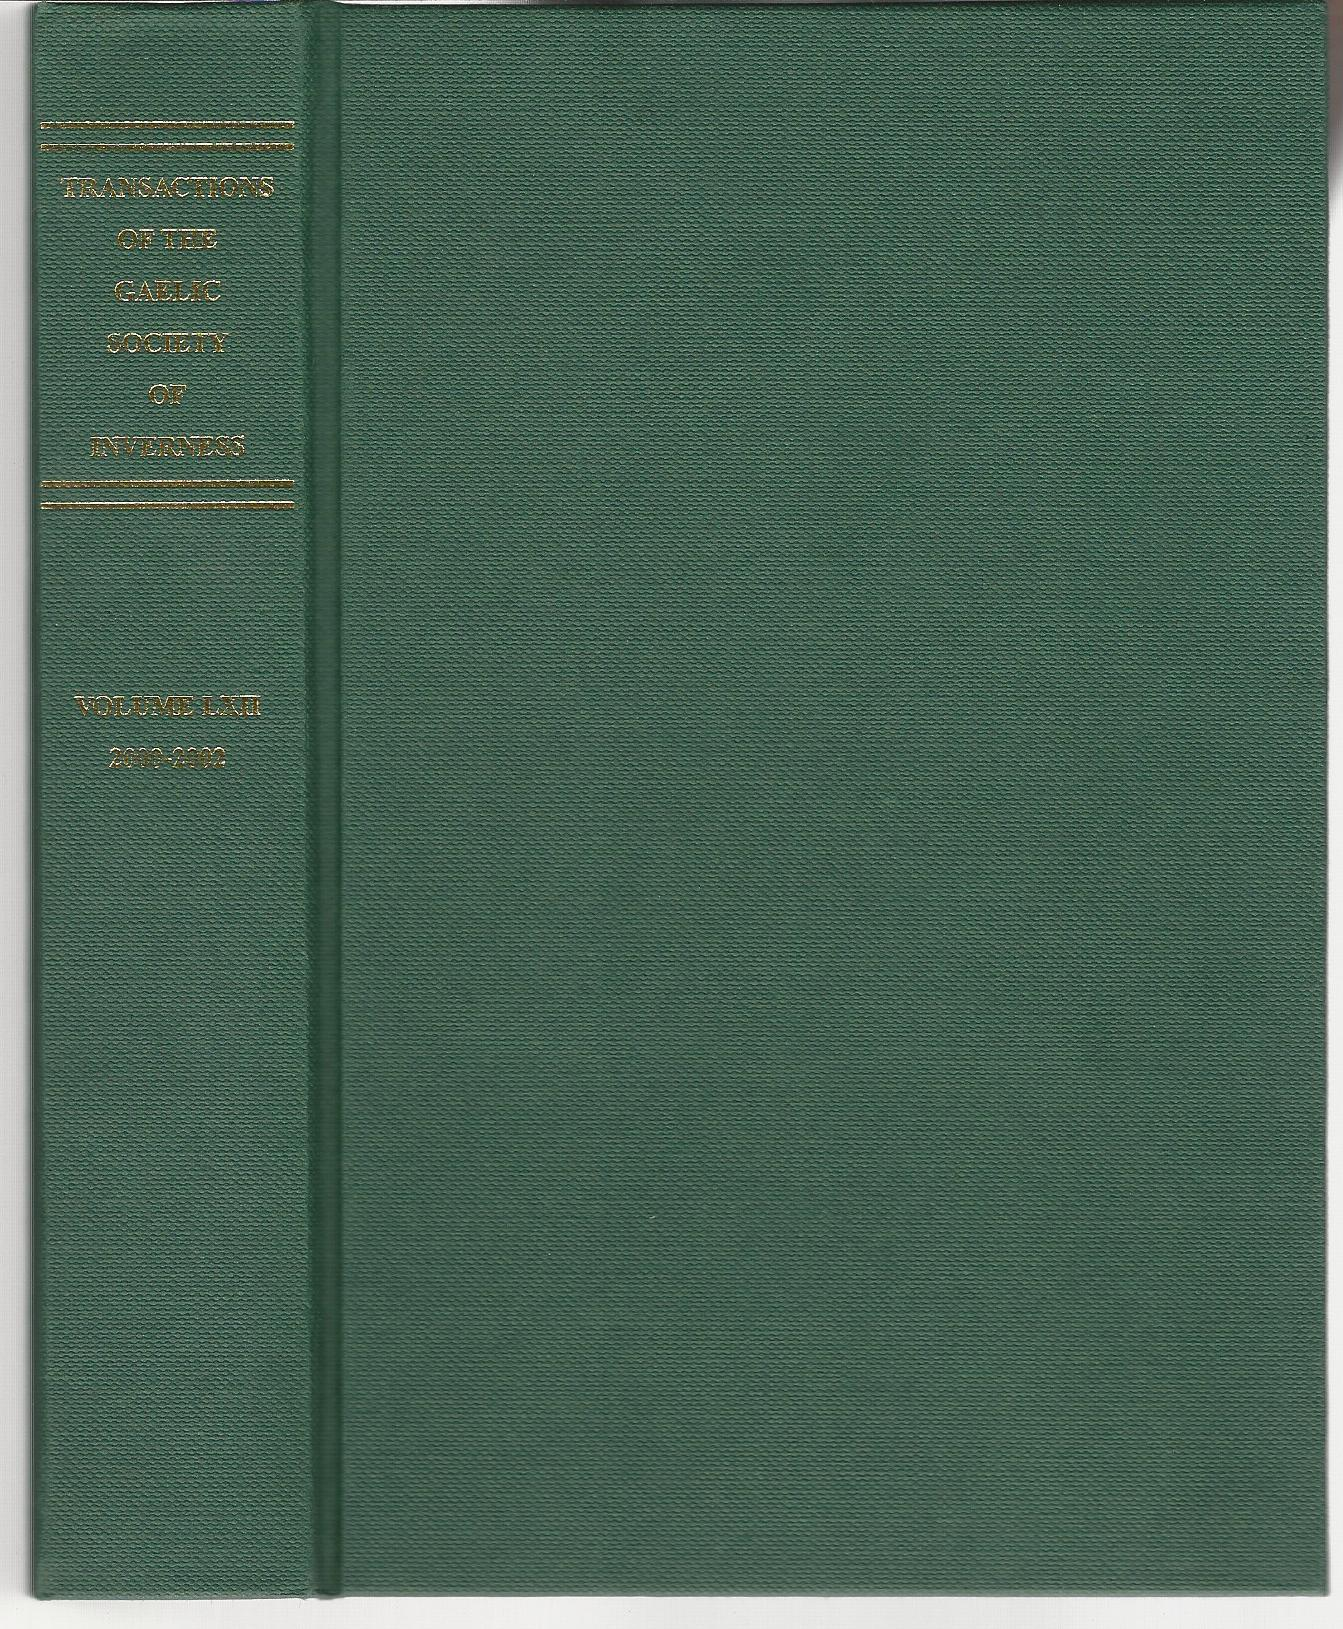 Image for Transactions of the Gaelic Society of Inverness: Volume LXII 2000-2002